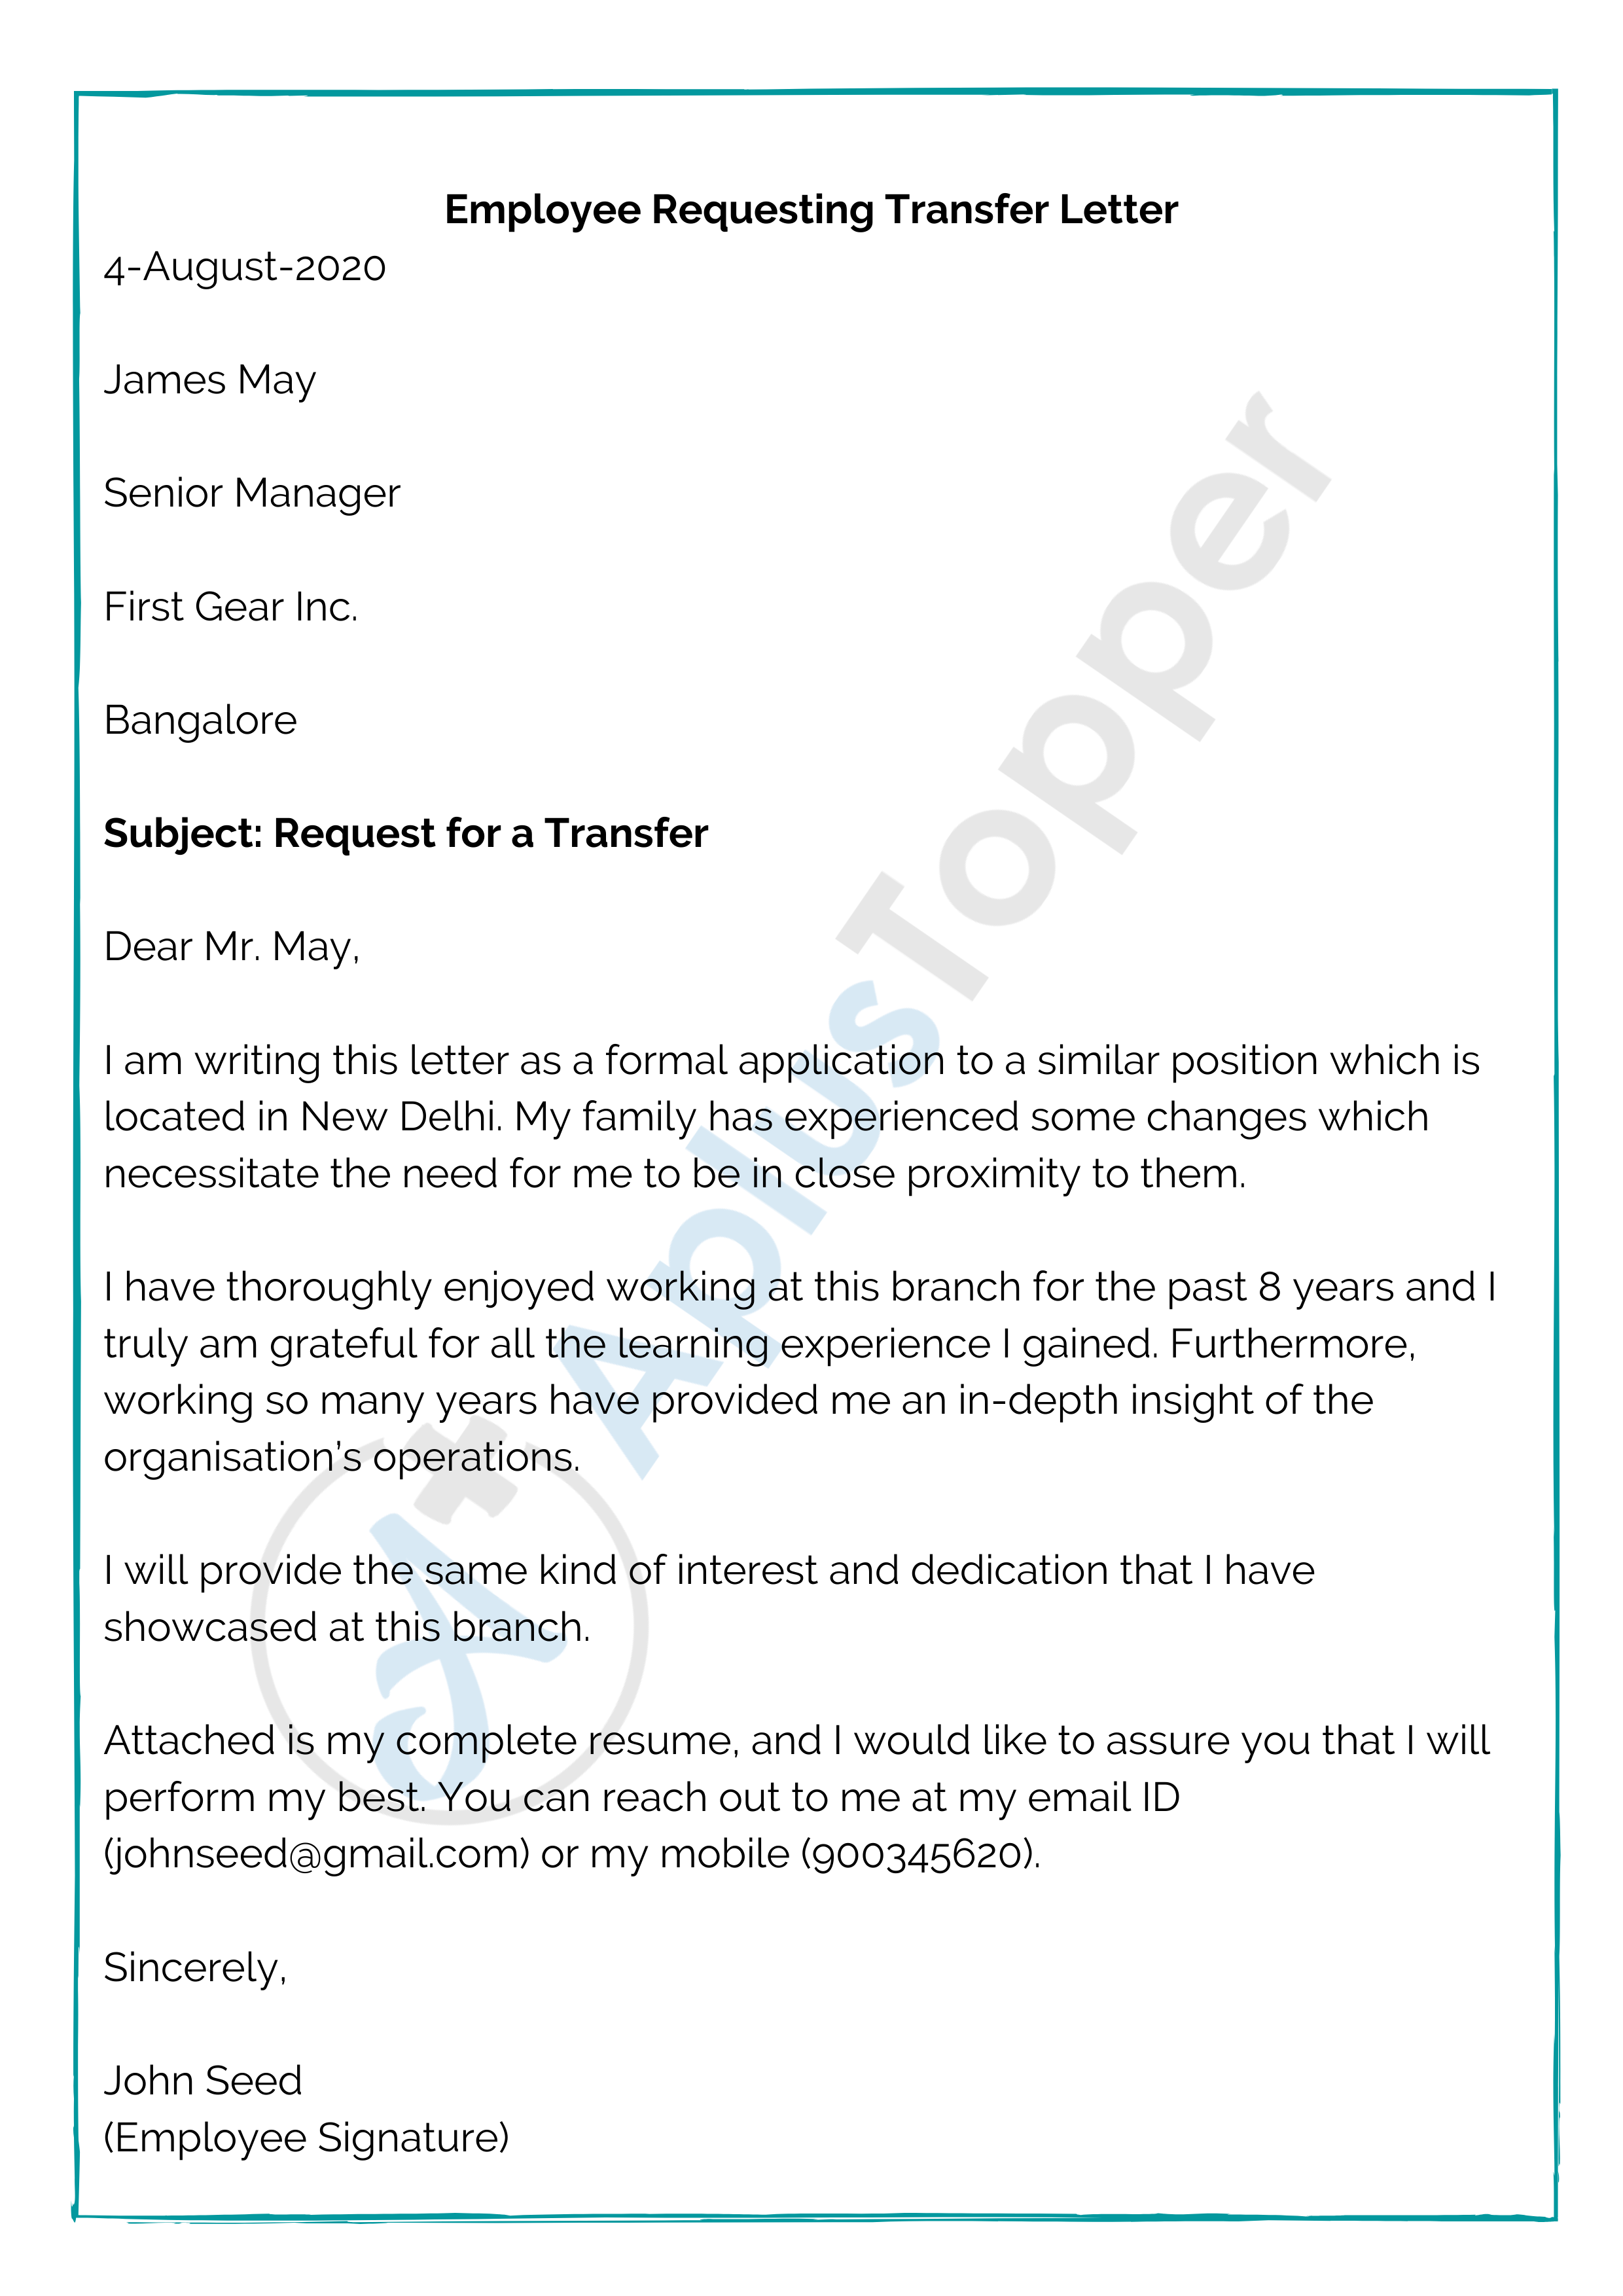 Employee Requesting Transfer Letter